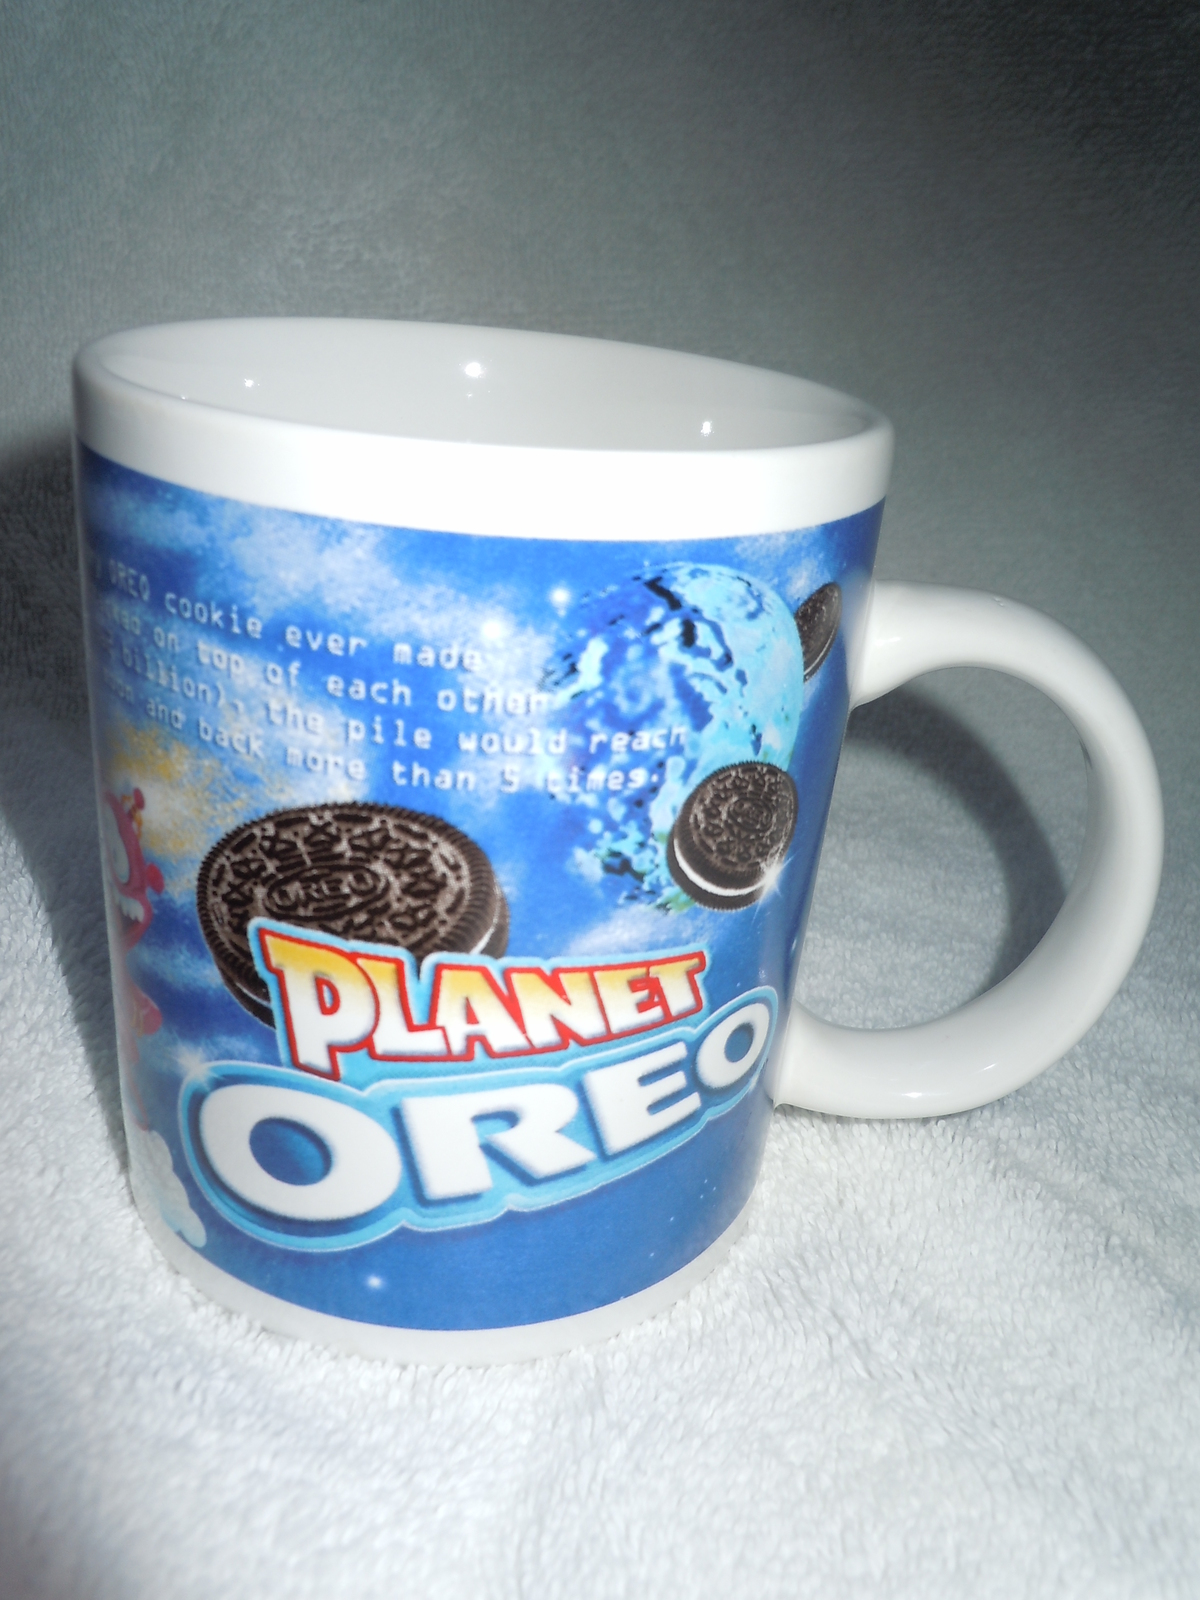 Planet Oreo Nabisco Coffee Mug